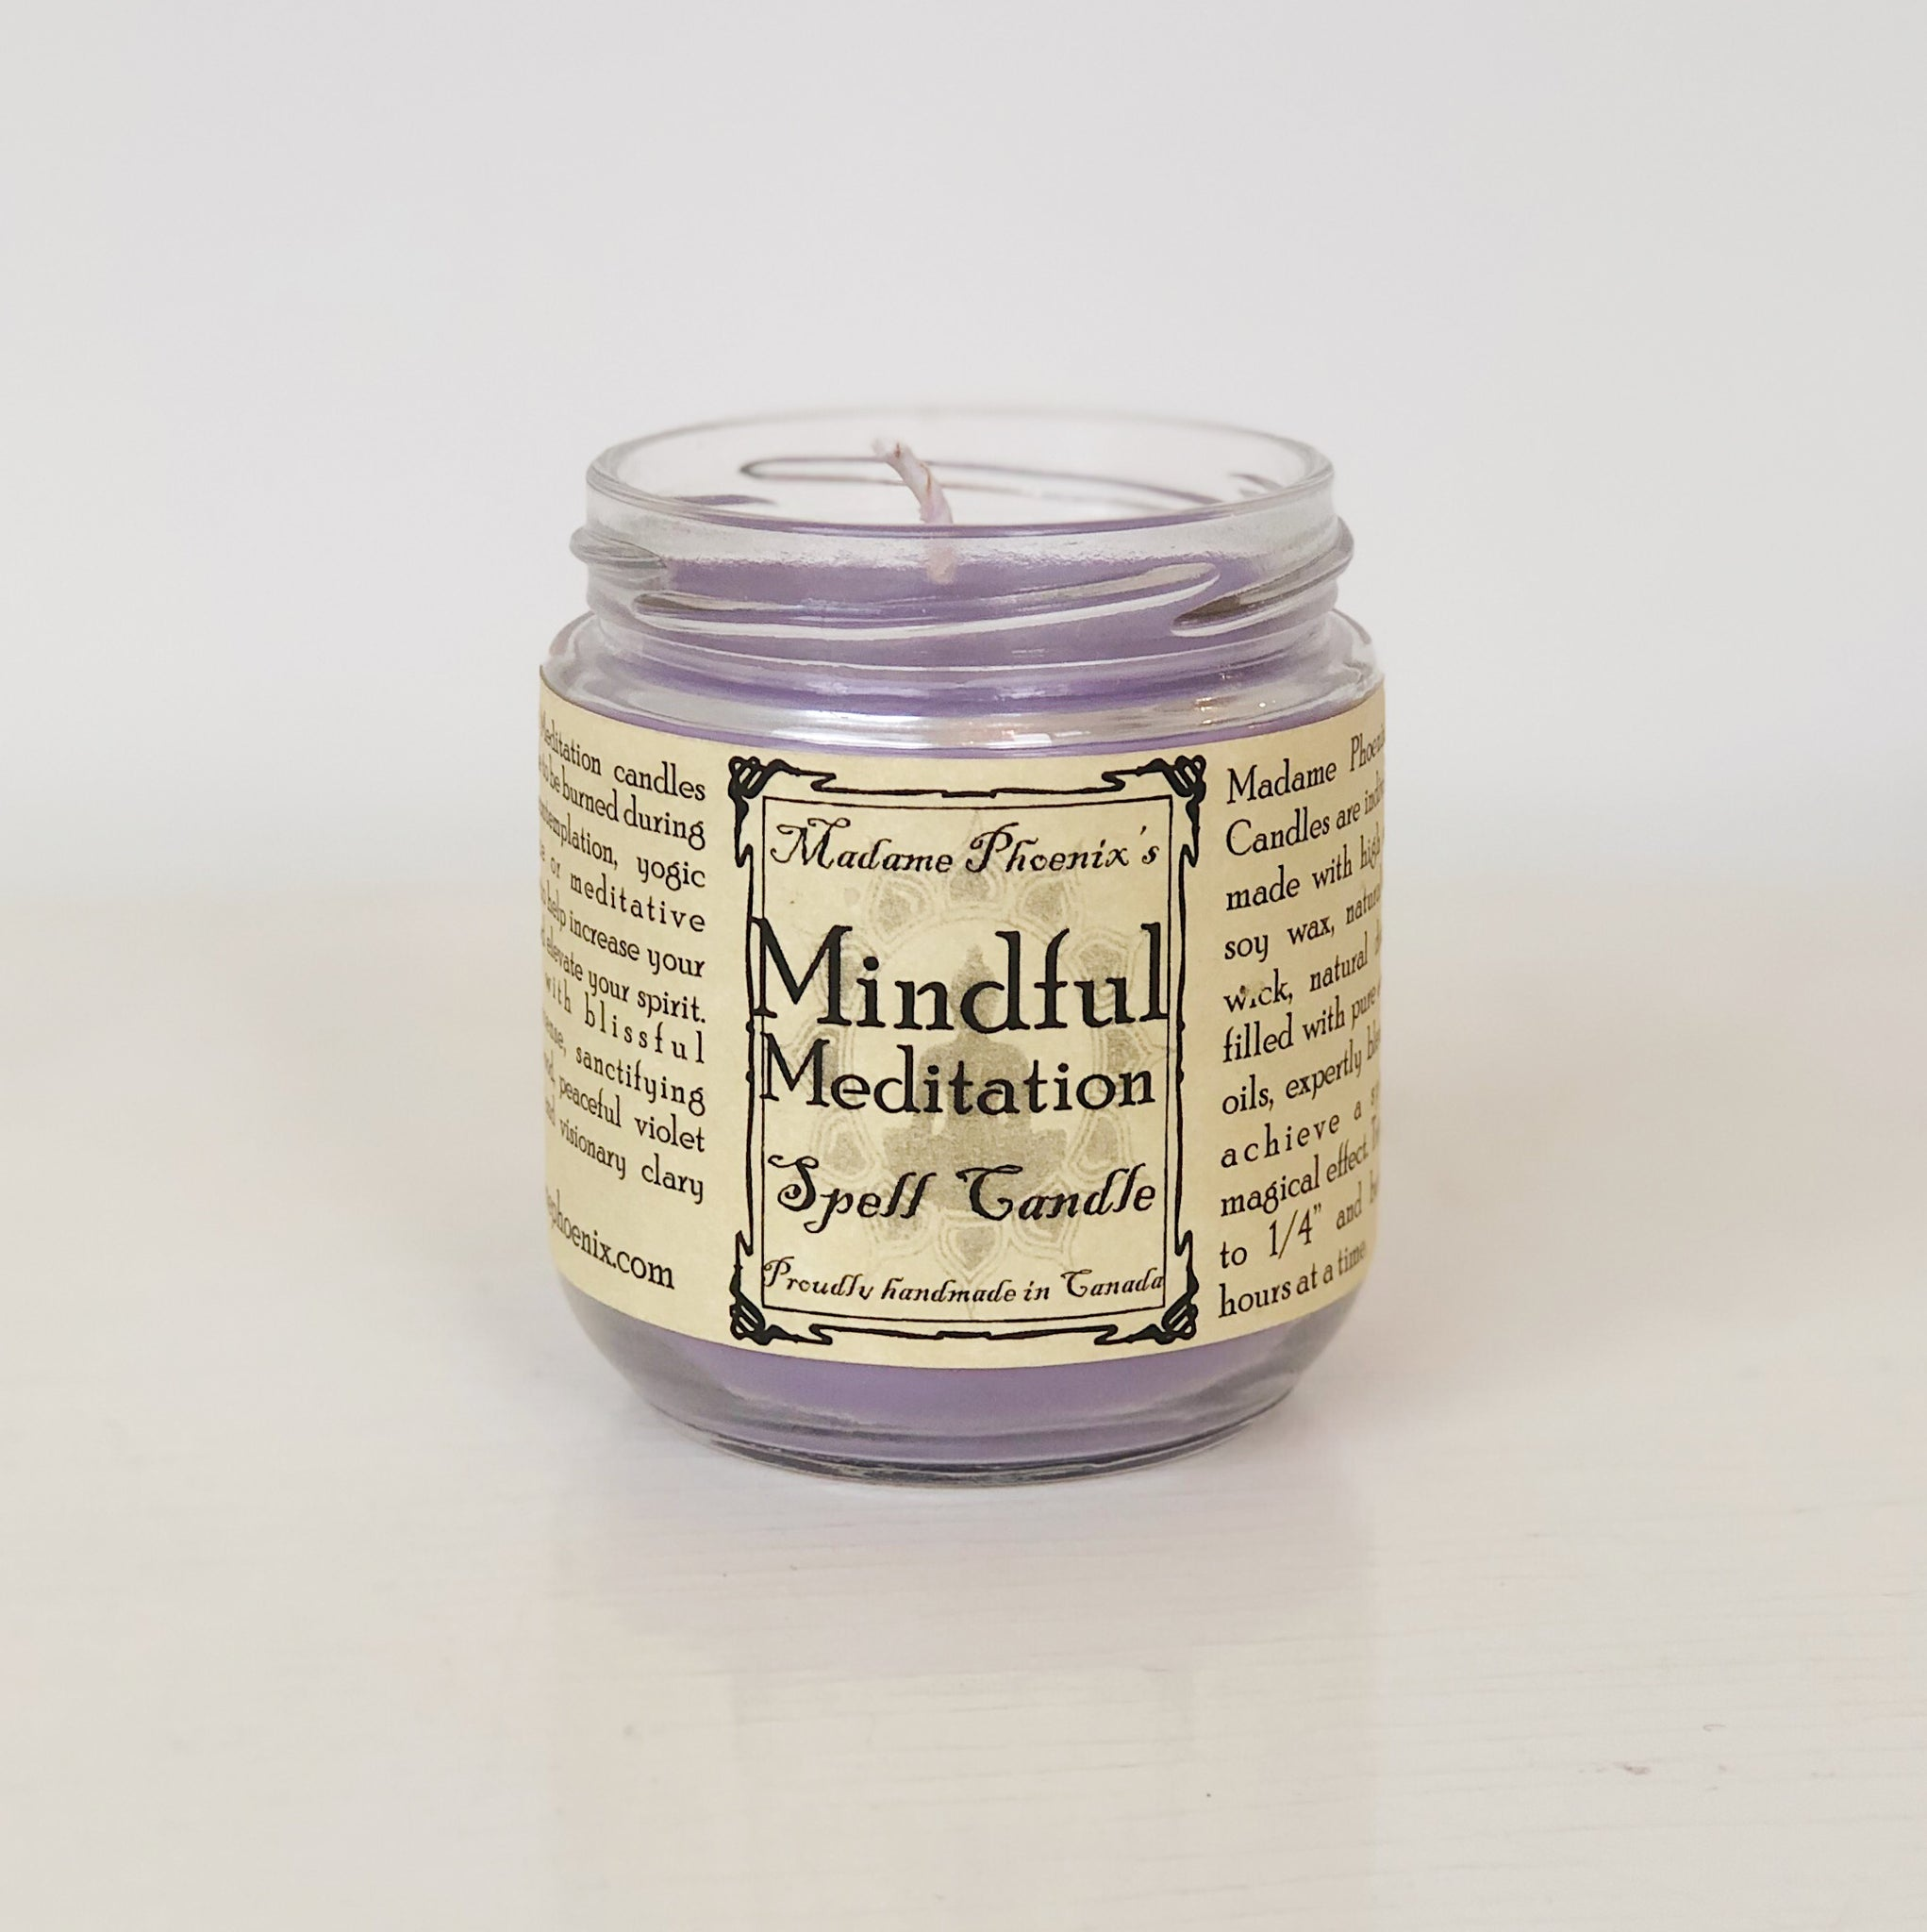 Mindful Meditation Magic Candle